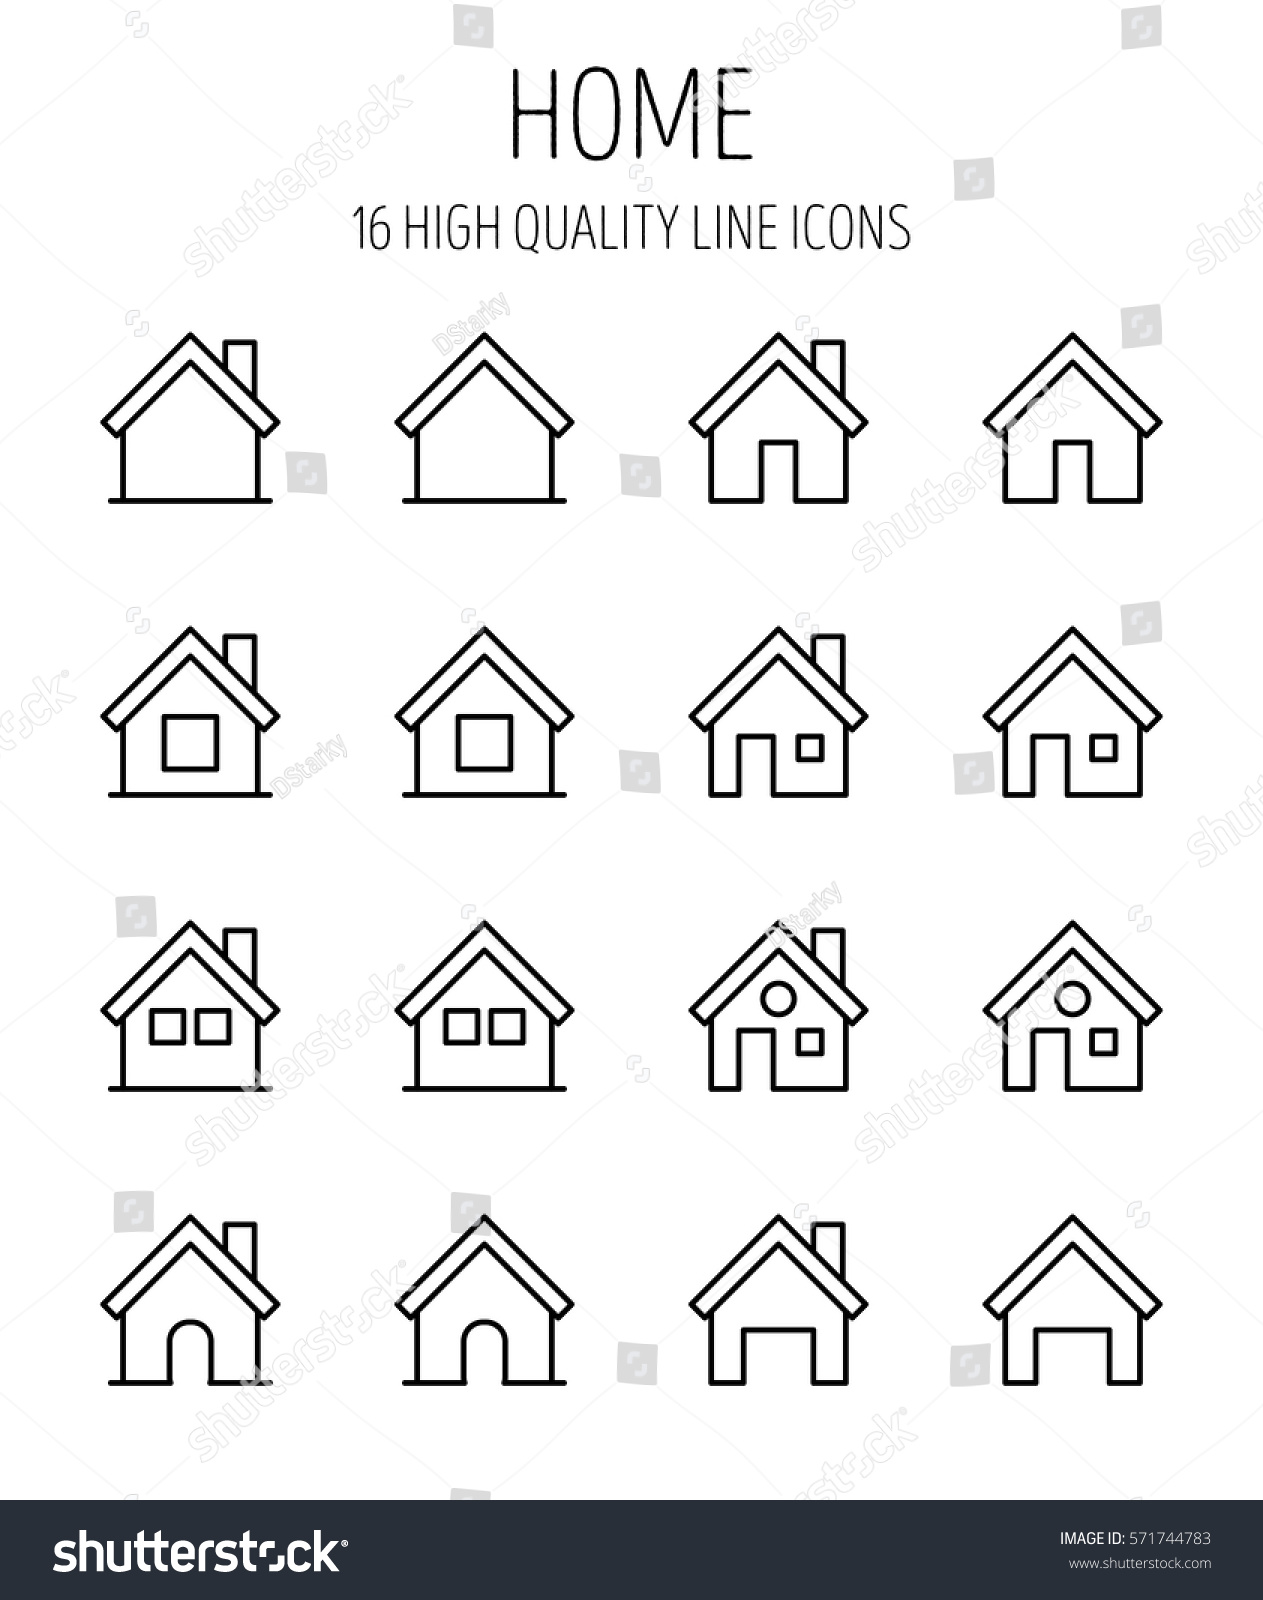 Set home icons modern thin line stock vector 571744783 shutterstock set of home icons in modern thin line style high quality black outline house symbols buycottarizona Image collections